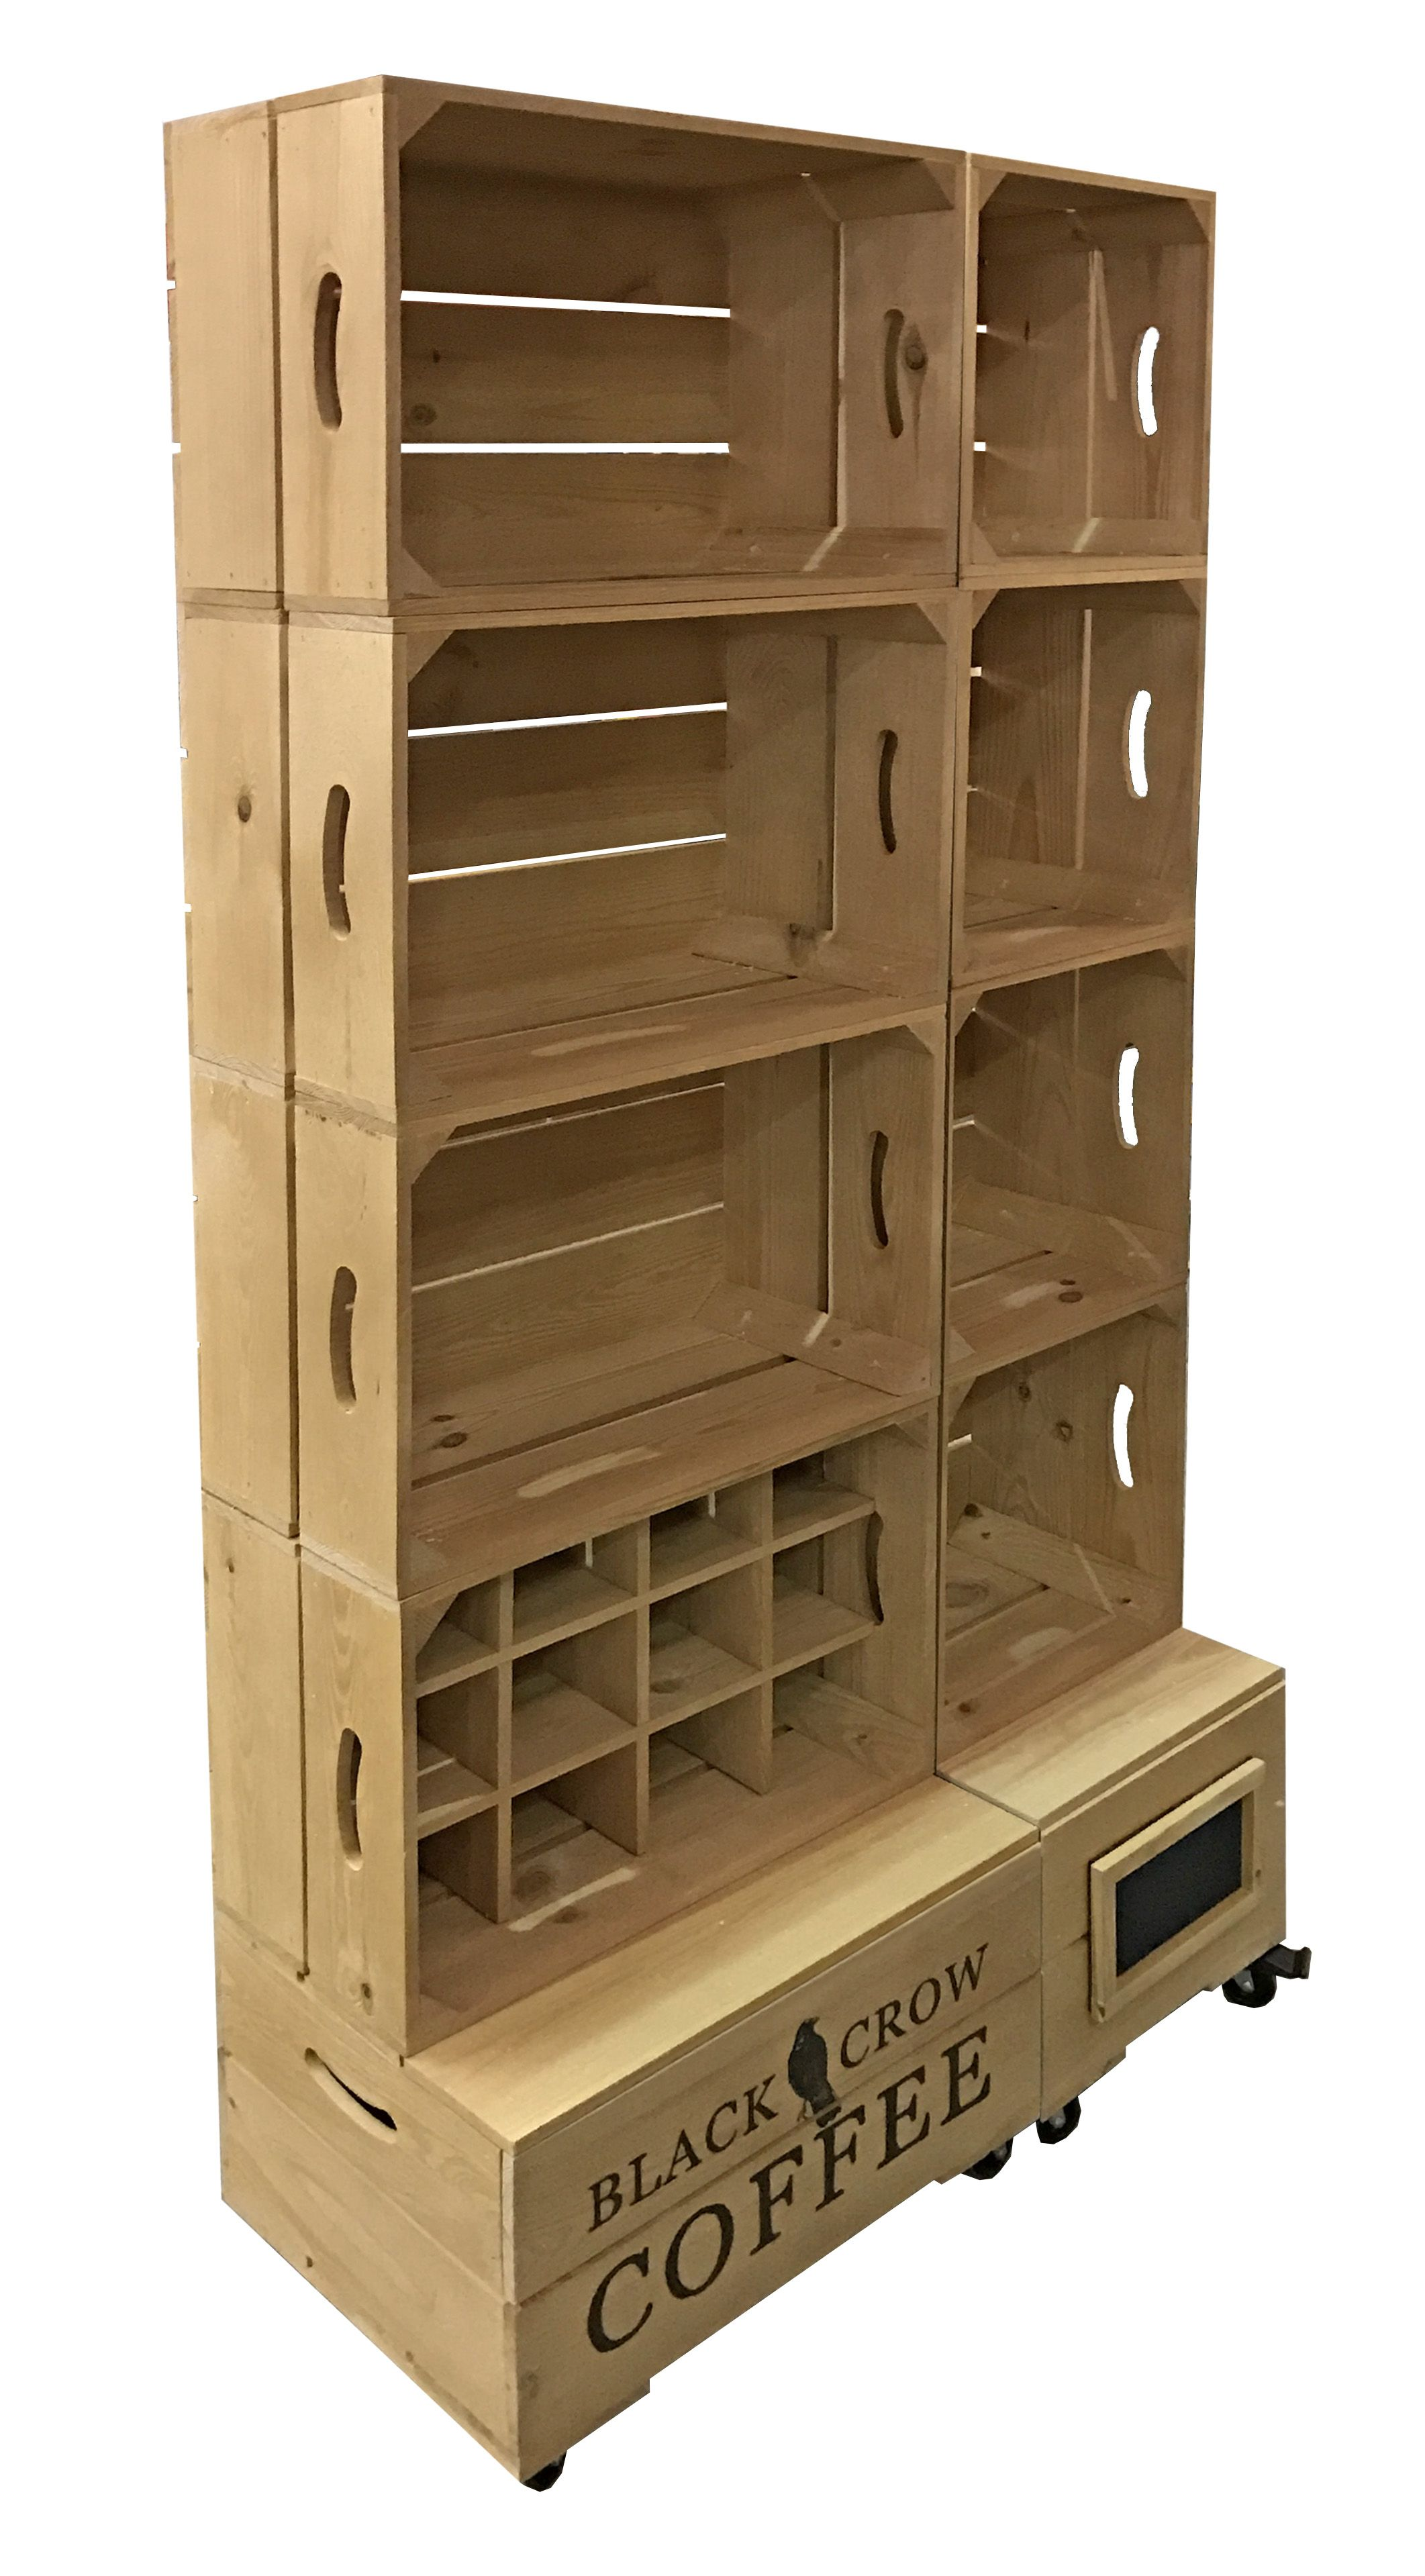 Branded Wooden Crates For Retail Display And Point Of Sale Idees